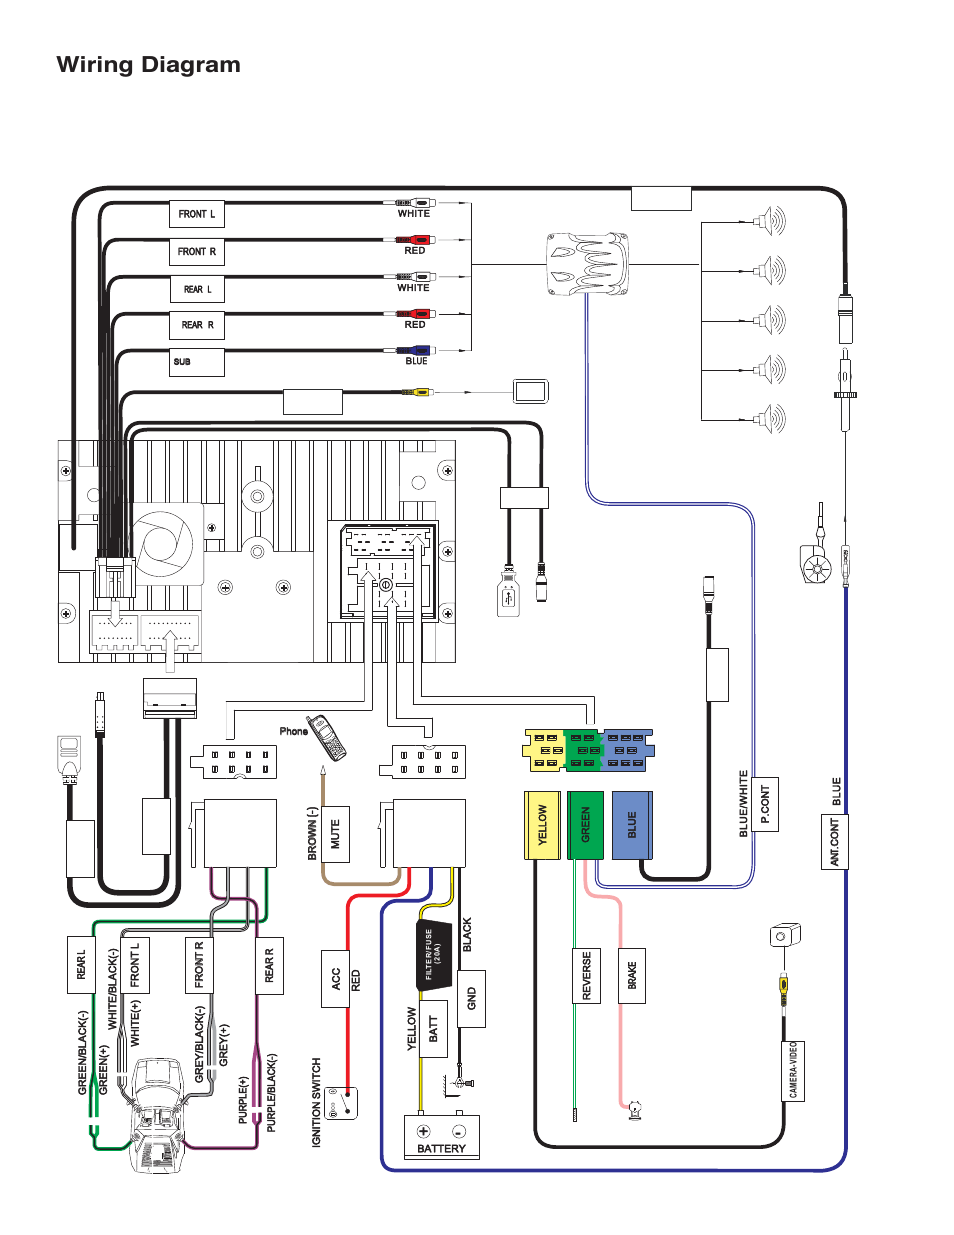 small resolution of source viper 5900 wiring diagram